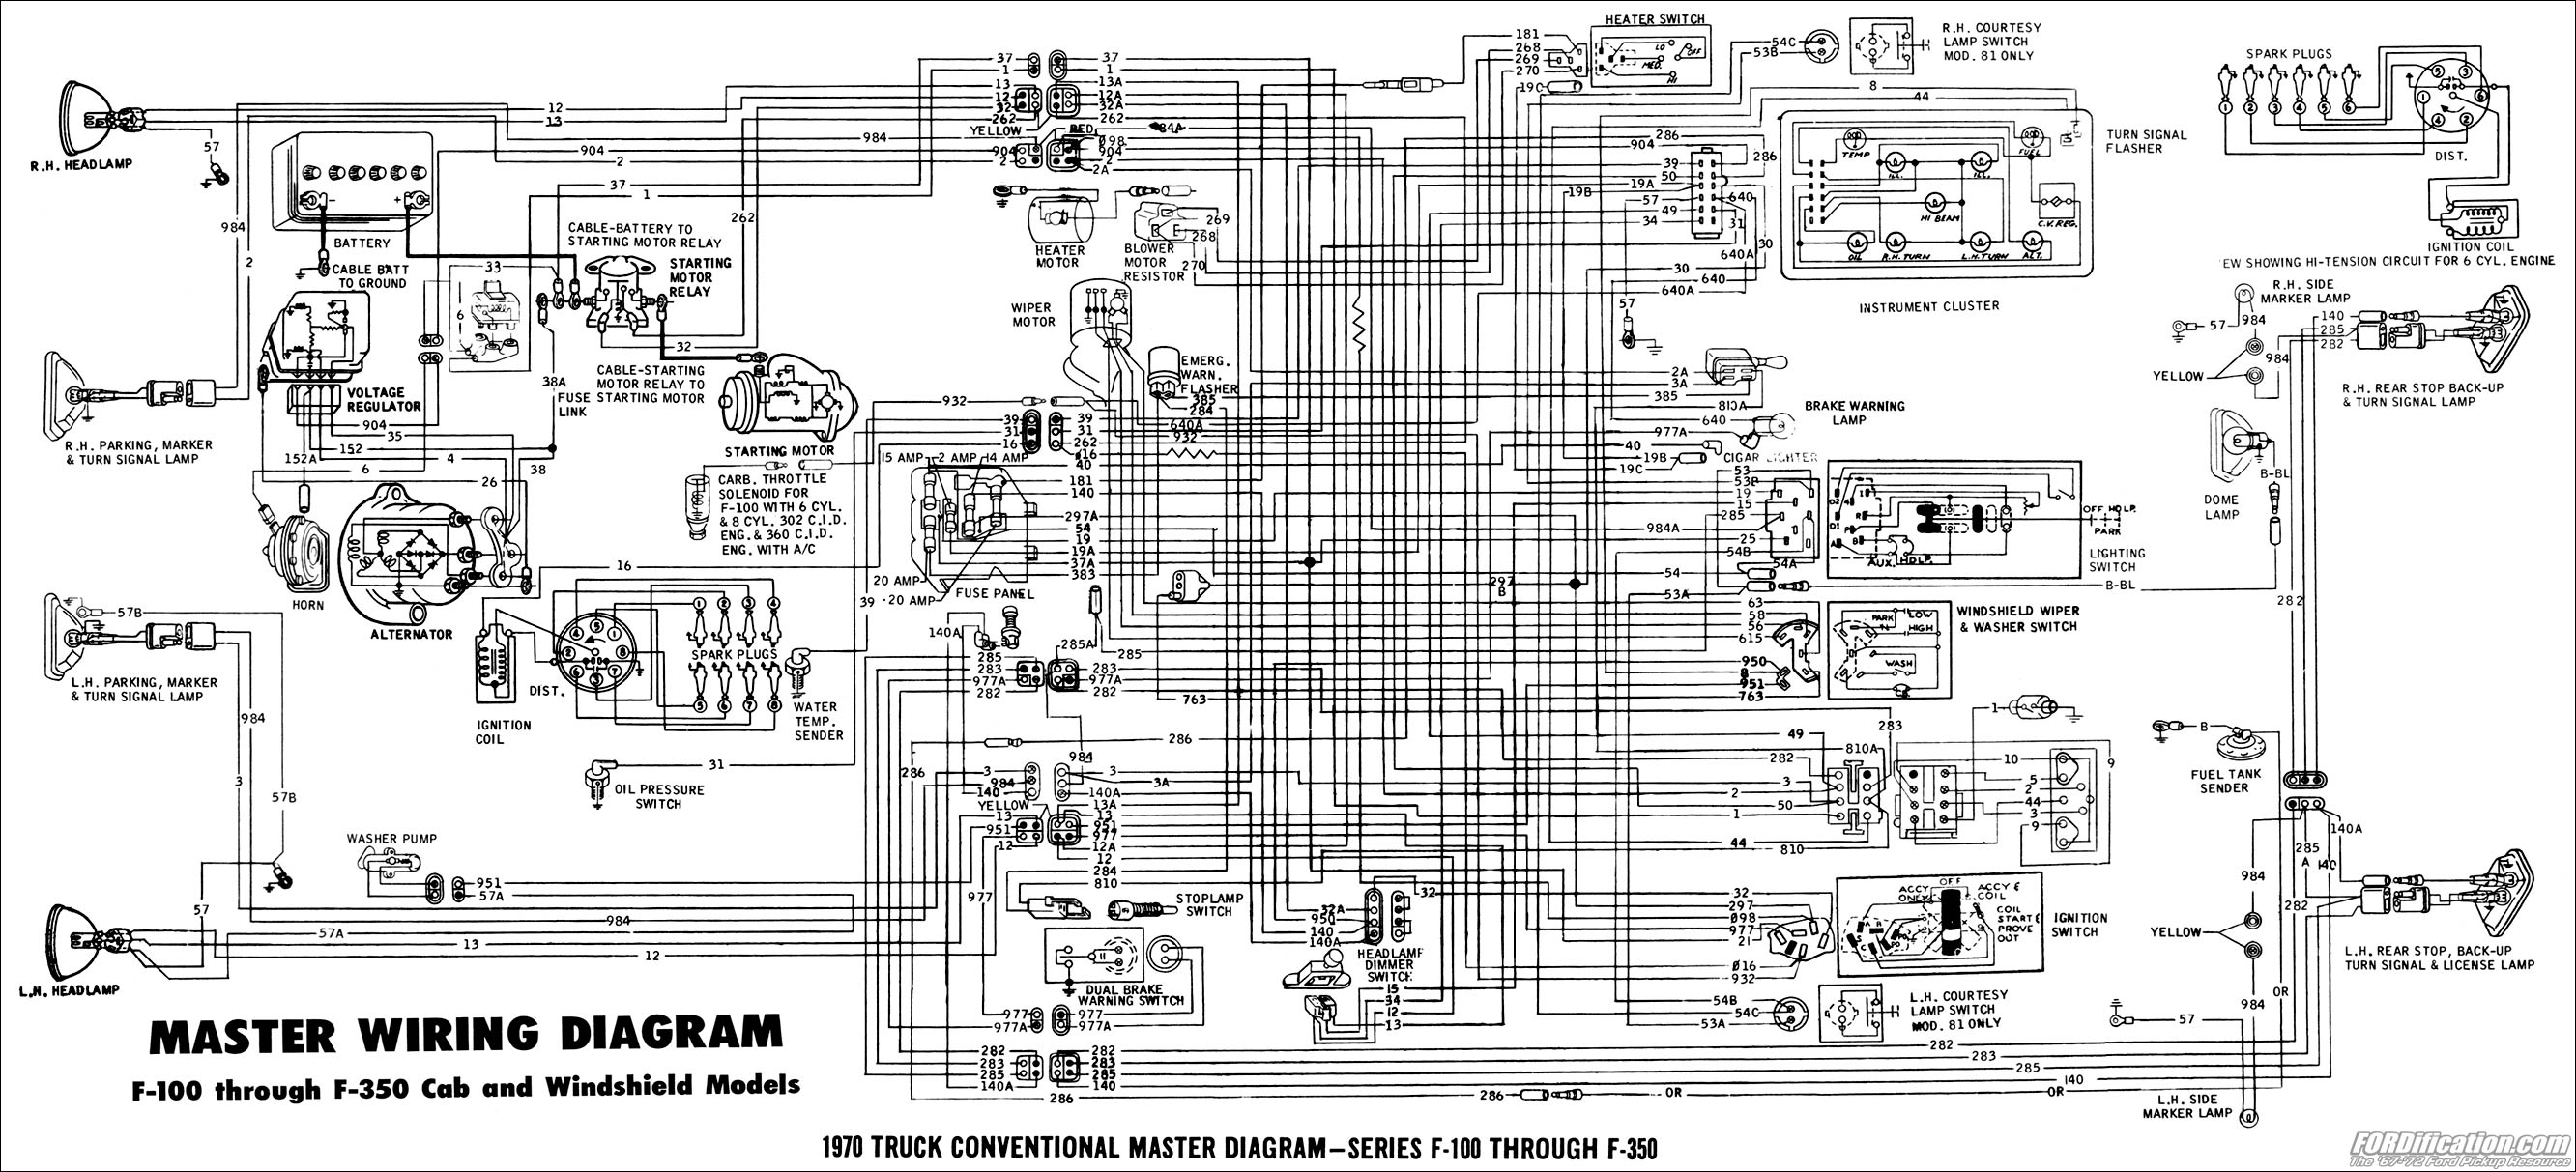 Wiring Diagram 1970 Ford F 250 Opinions About Wiring Diagram \u2022 2003 F350  Wiring Diagram F350 Wiring Diagram